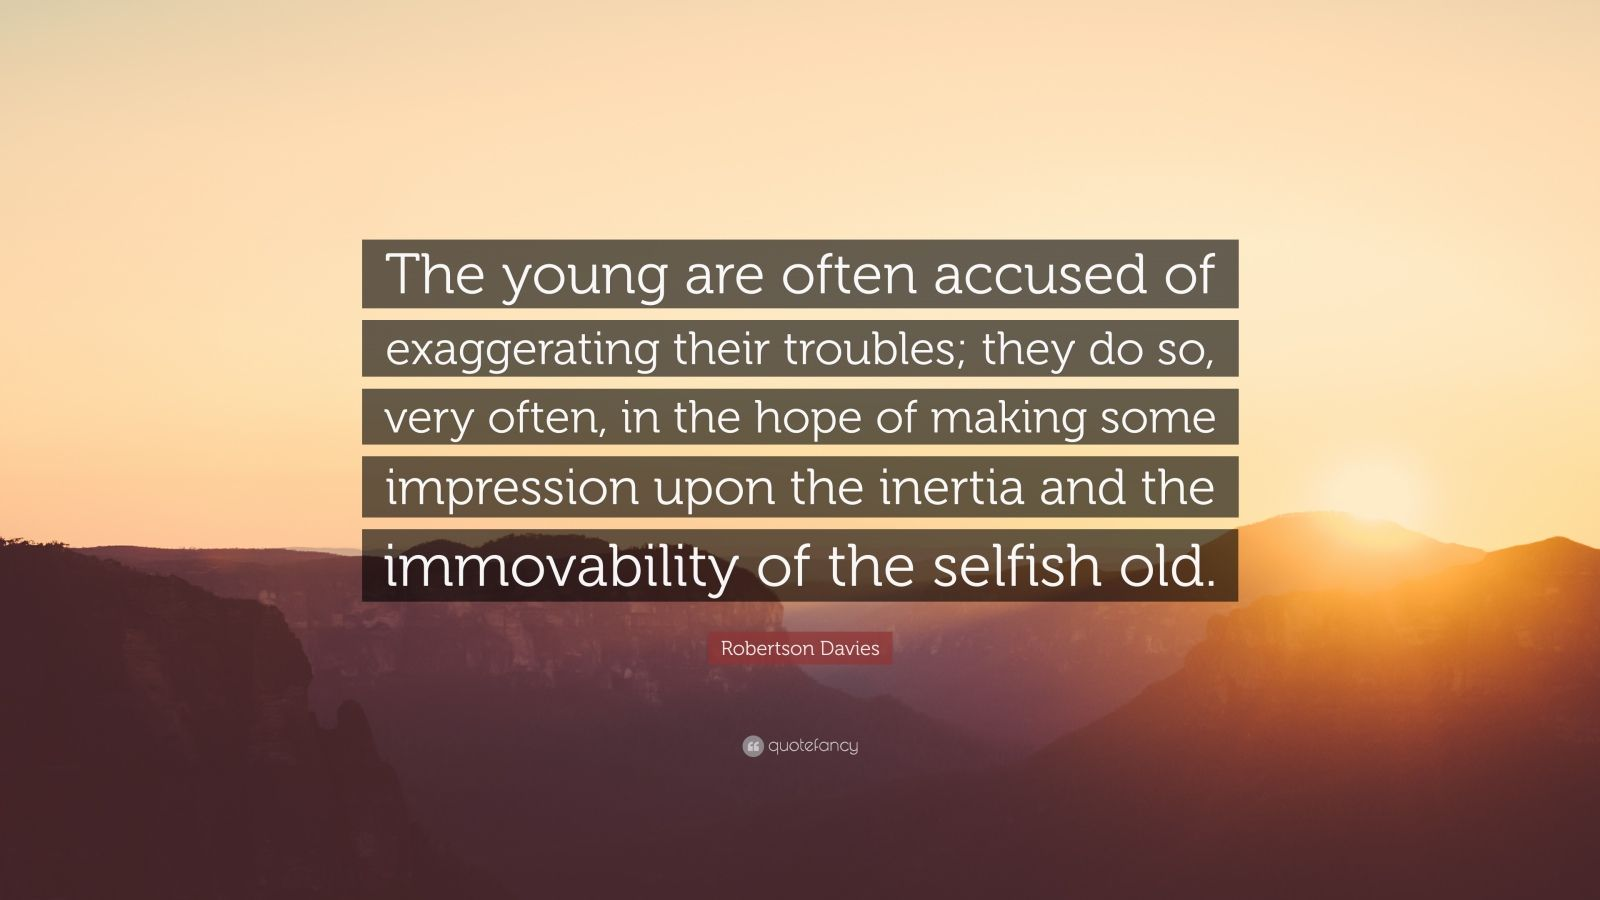 """Robertson Davies Quote: """"The young are often accused of exaggerating their troubles; they do so, very often, in the hope of making some impression upon the inertia and the immovability of the selfish old."""""""